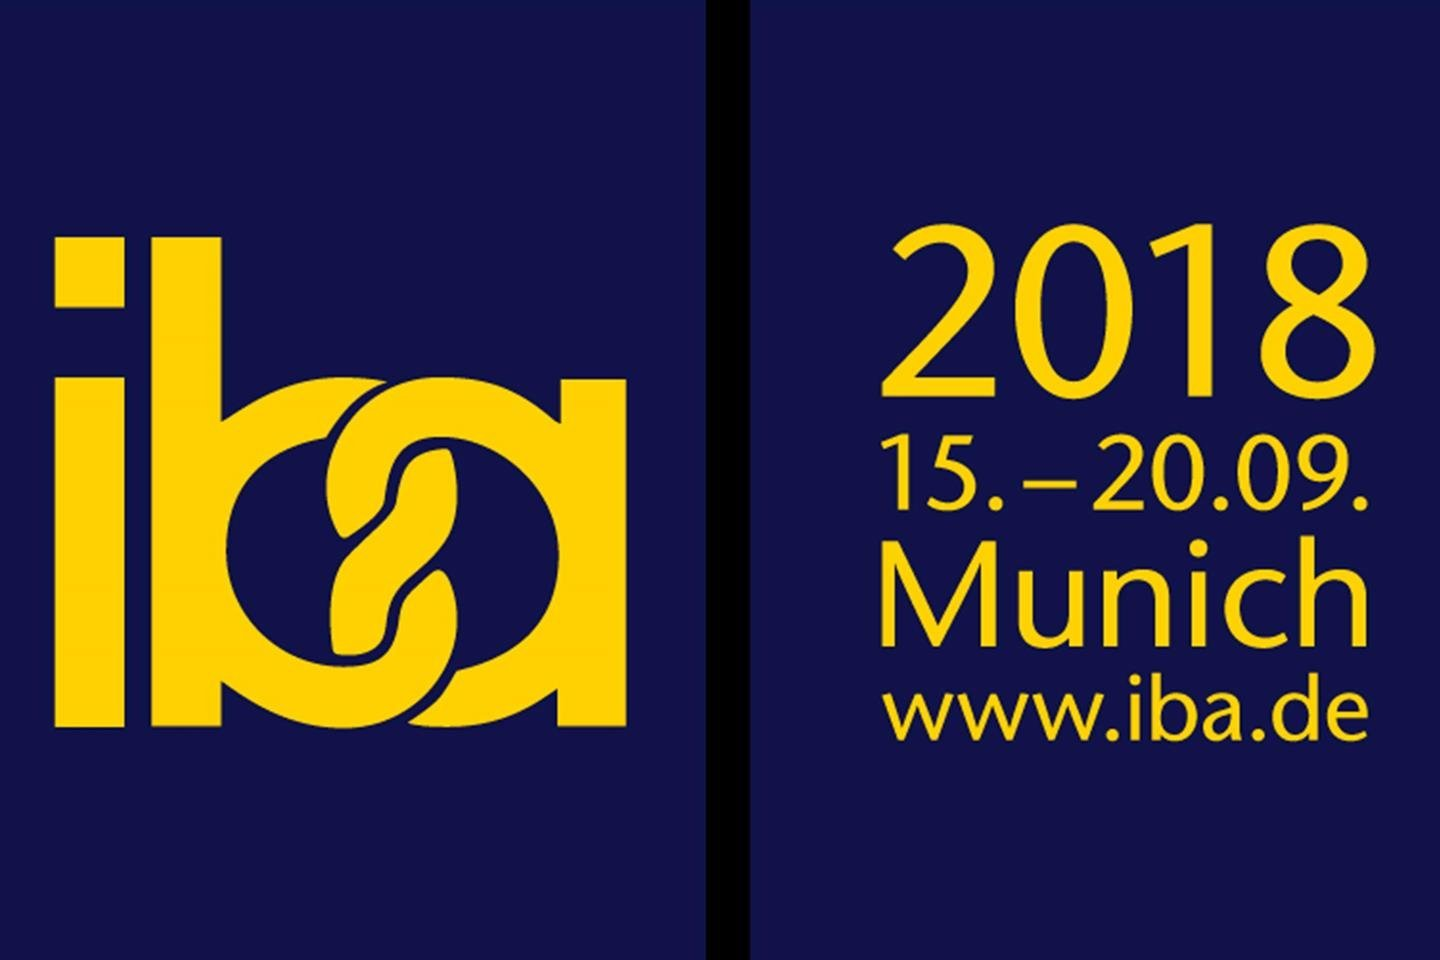 IBA 2018 THE WORLD'S LEADING TRADE FAIR FOR BAKERY, CONFECTIONERY AND SNACKS